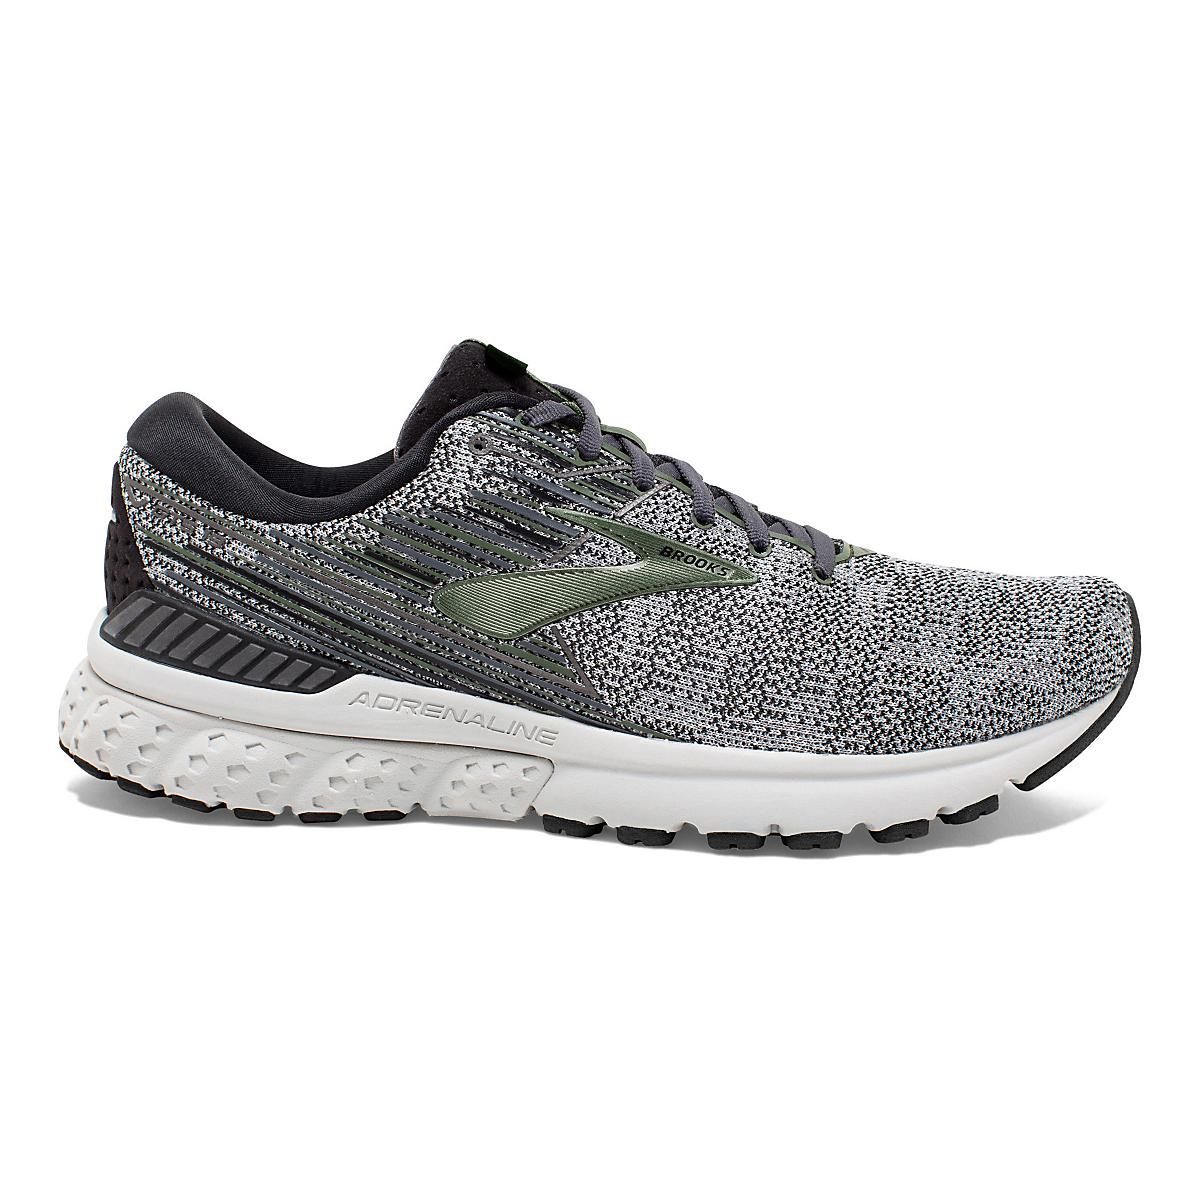 36e65c350644e Mens Brooks Adrenaline GTS 19 Running Shoe at Road Runner Sports